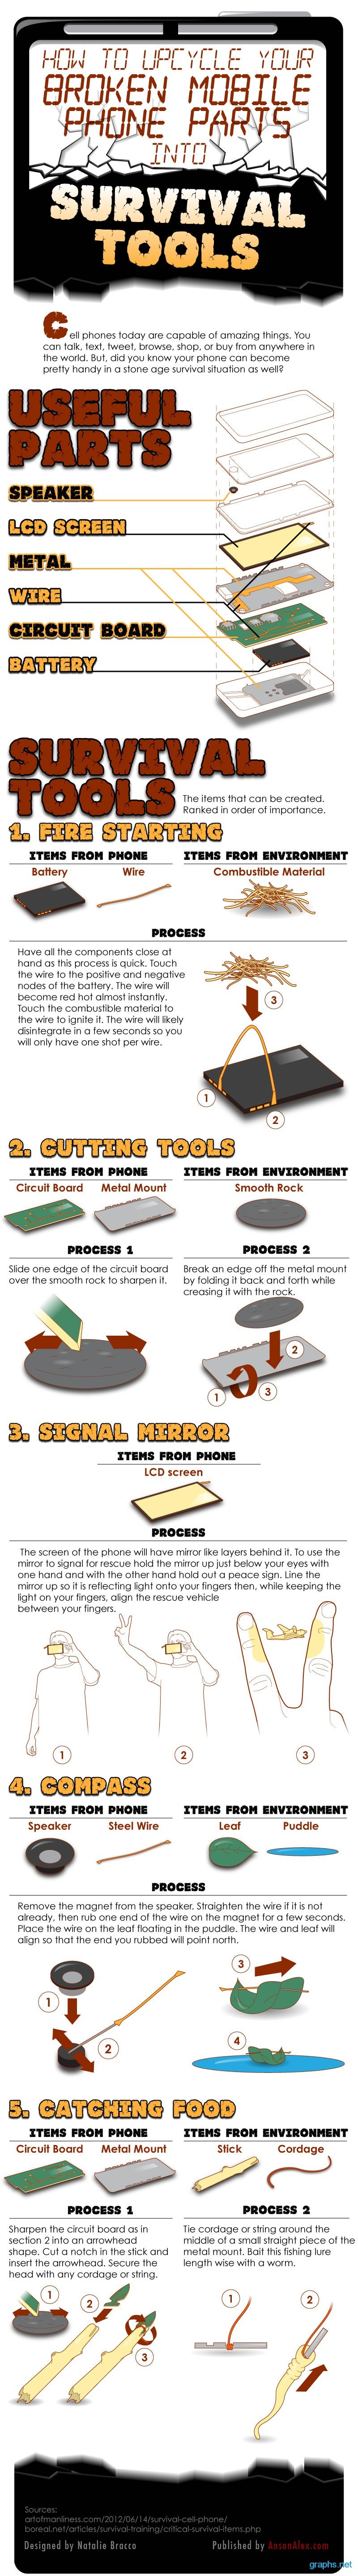 Ways to Use Broken Mobile Phone Parts